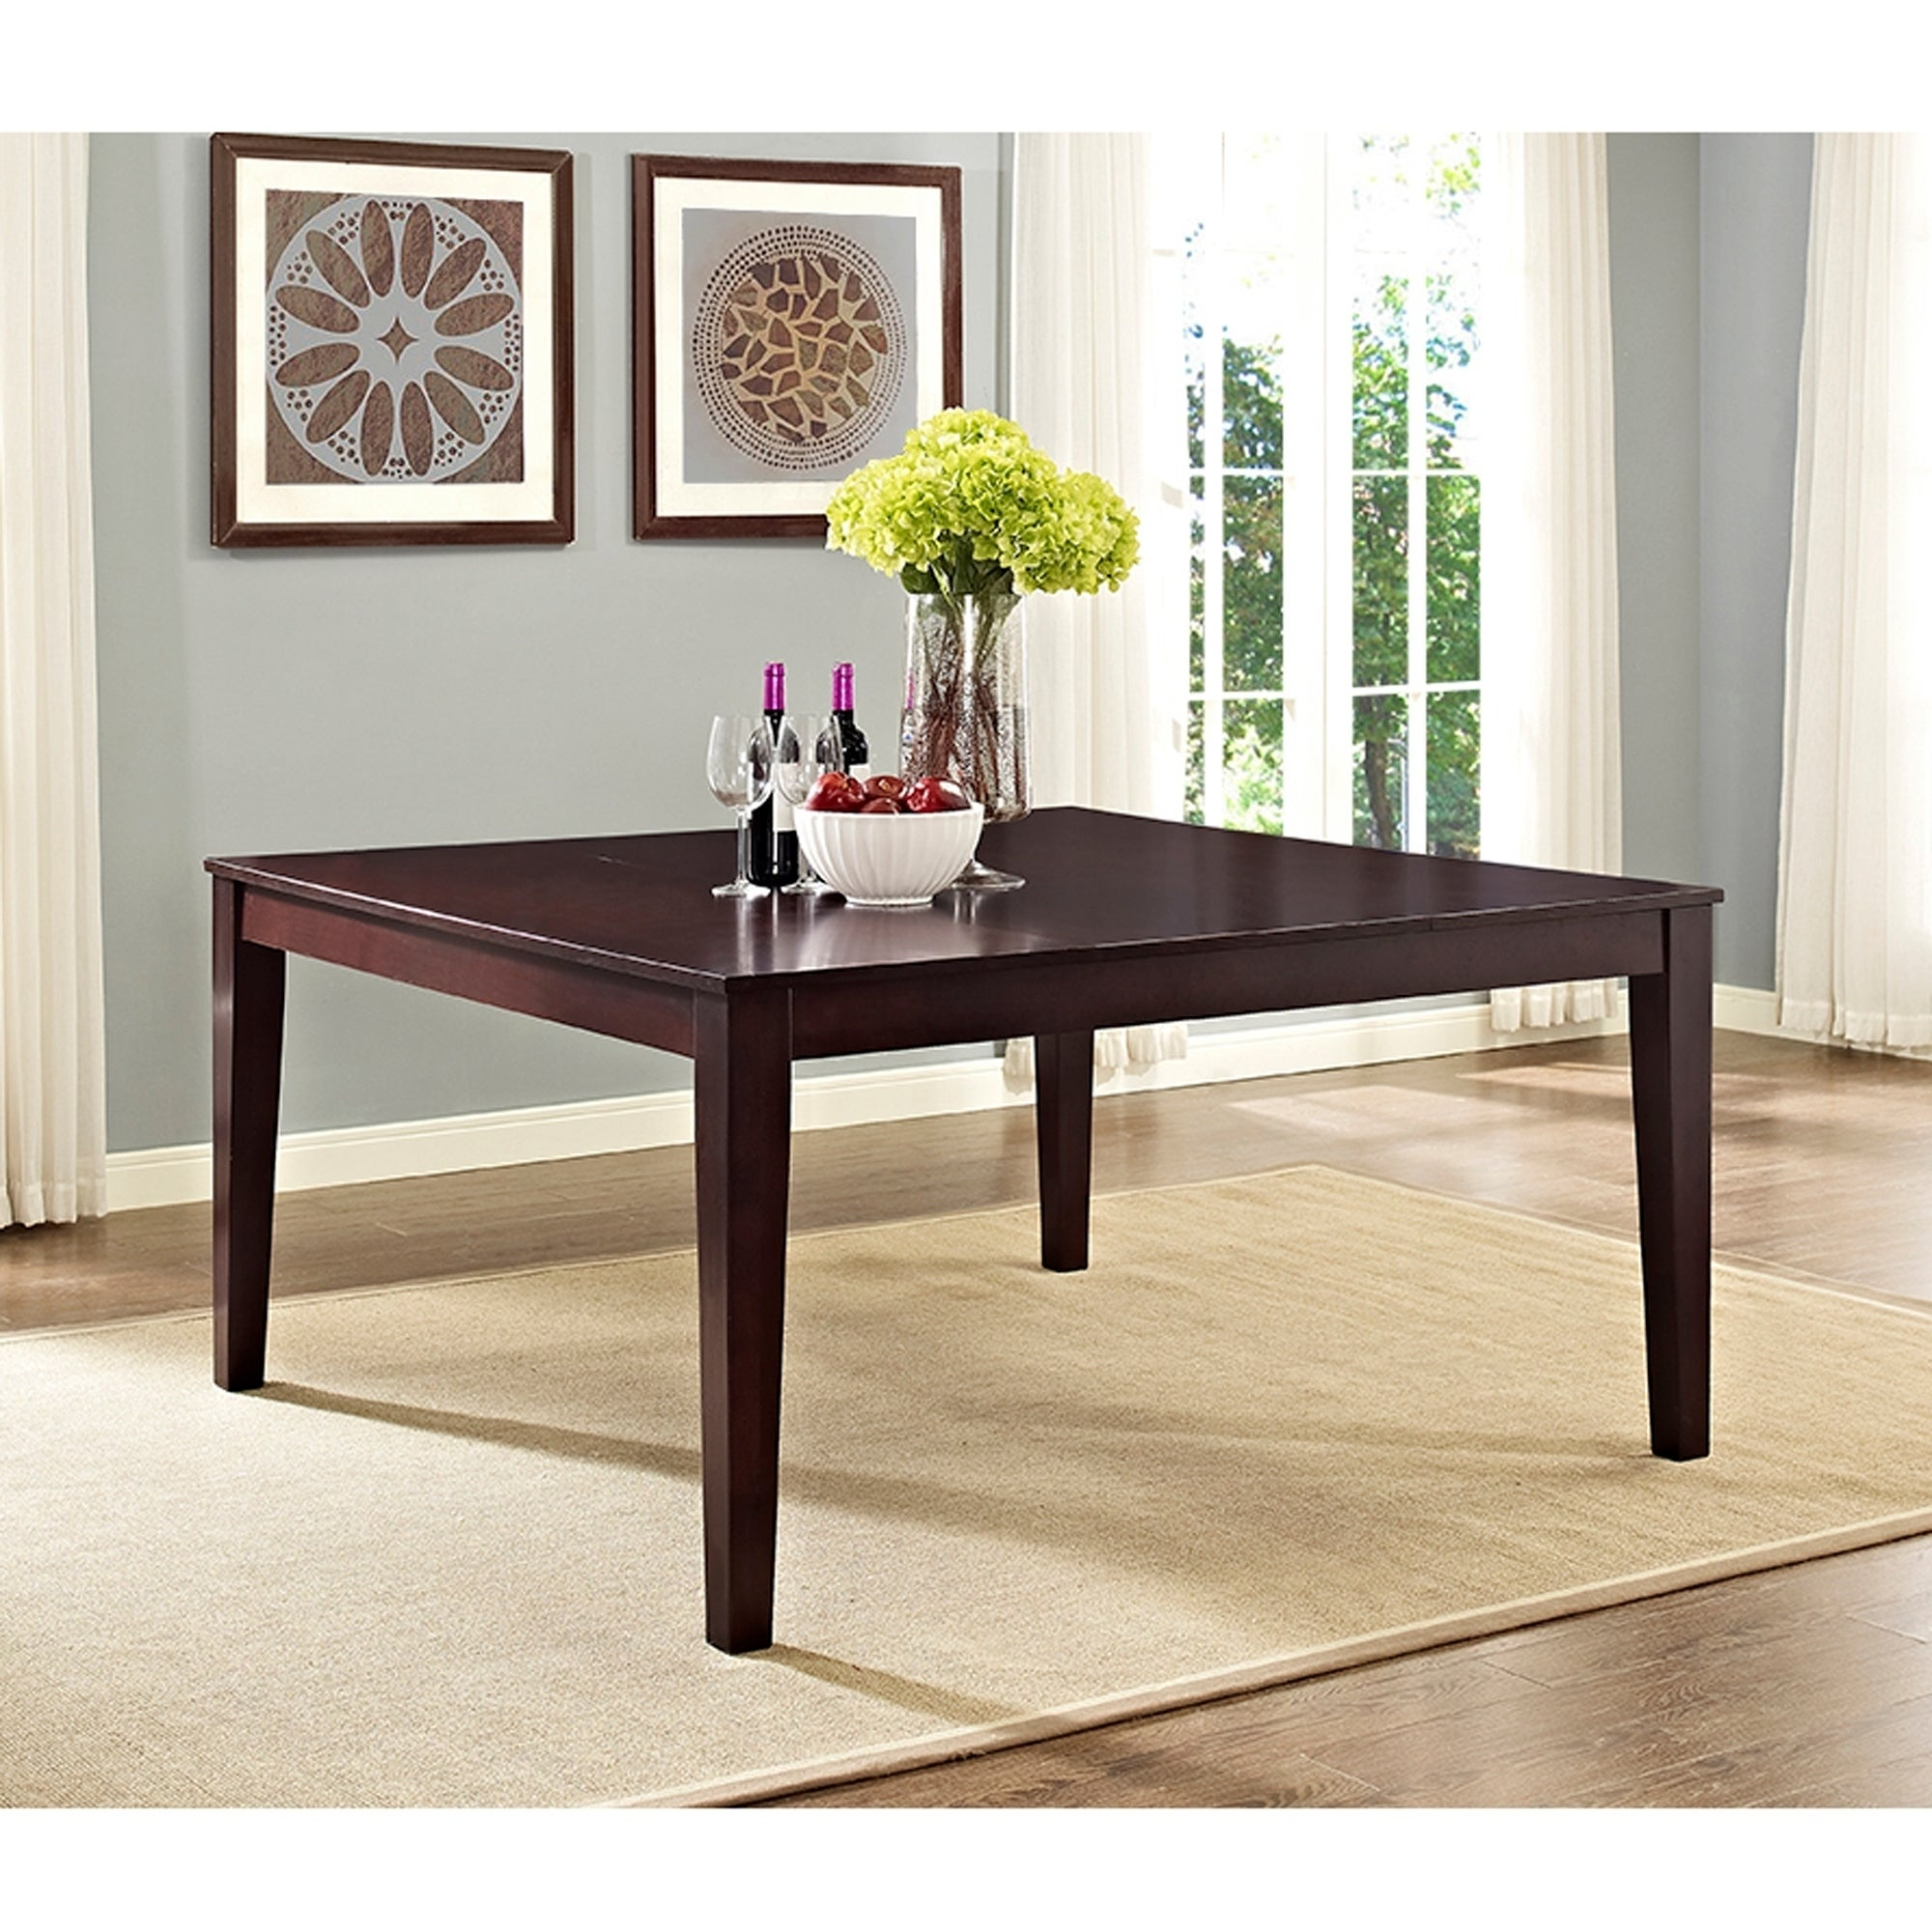 60 Inch Cappuccino Square Wood Dining Table